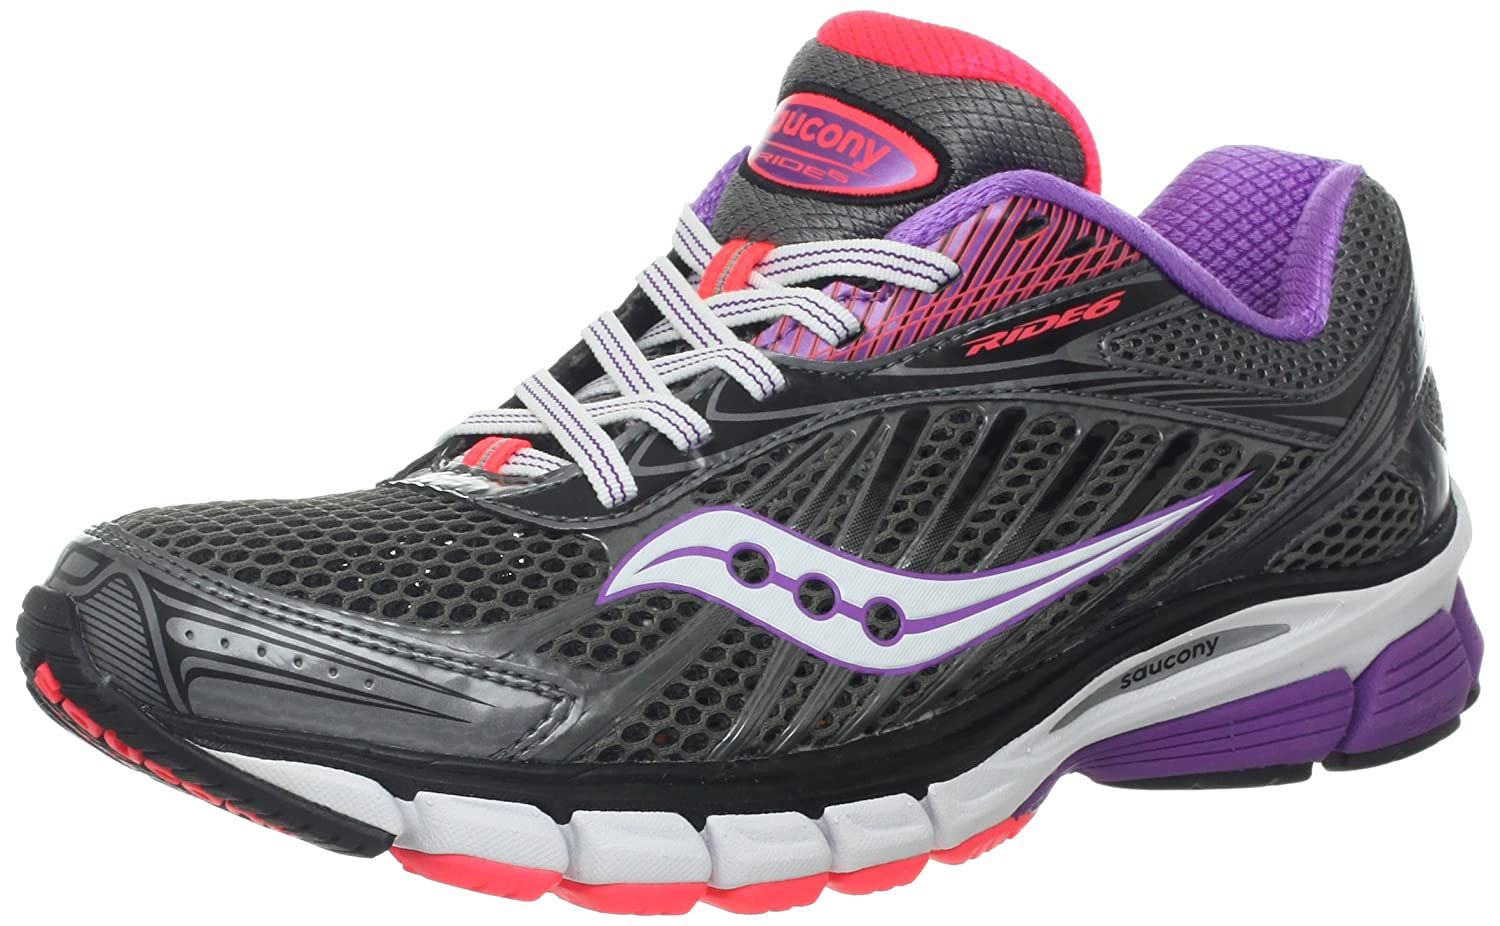 new saucony shoes